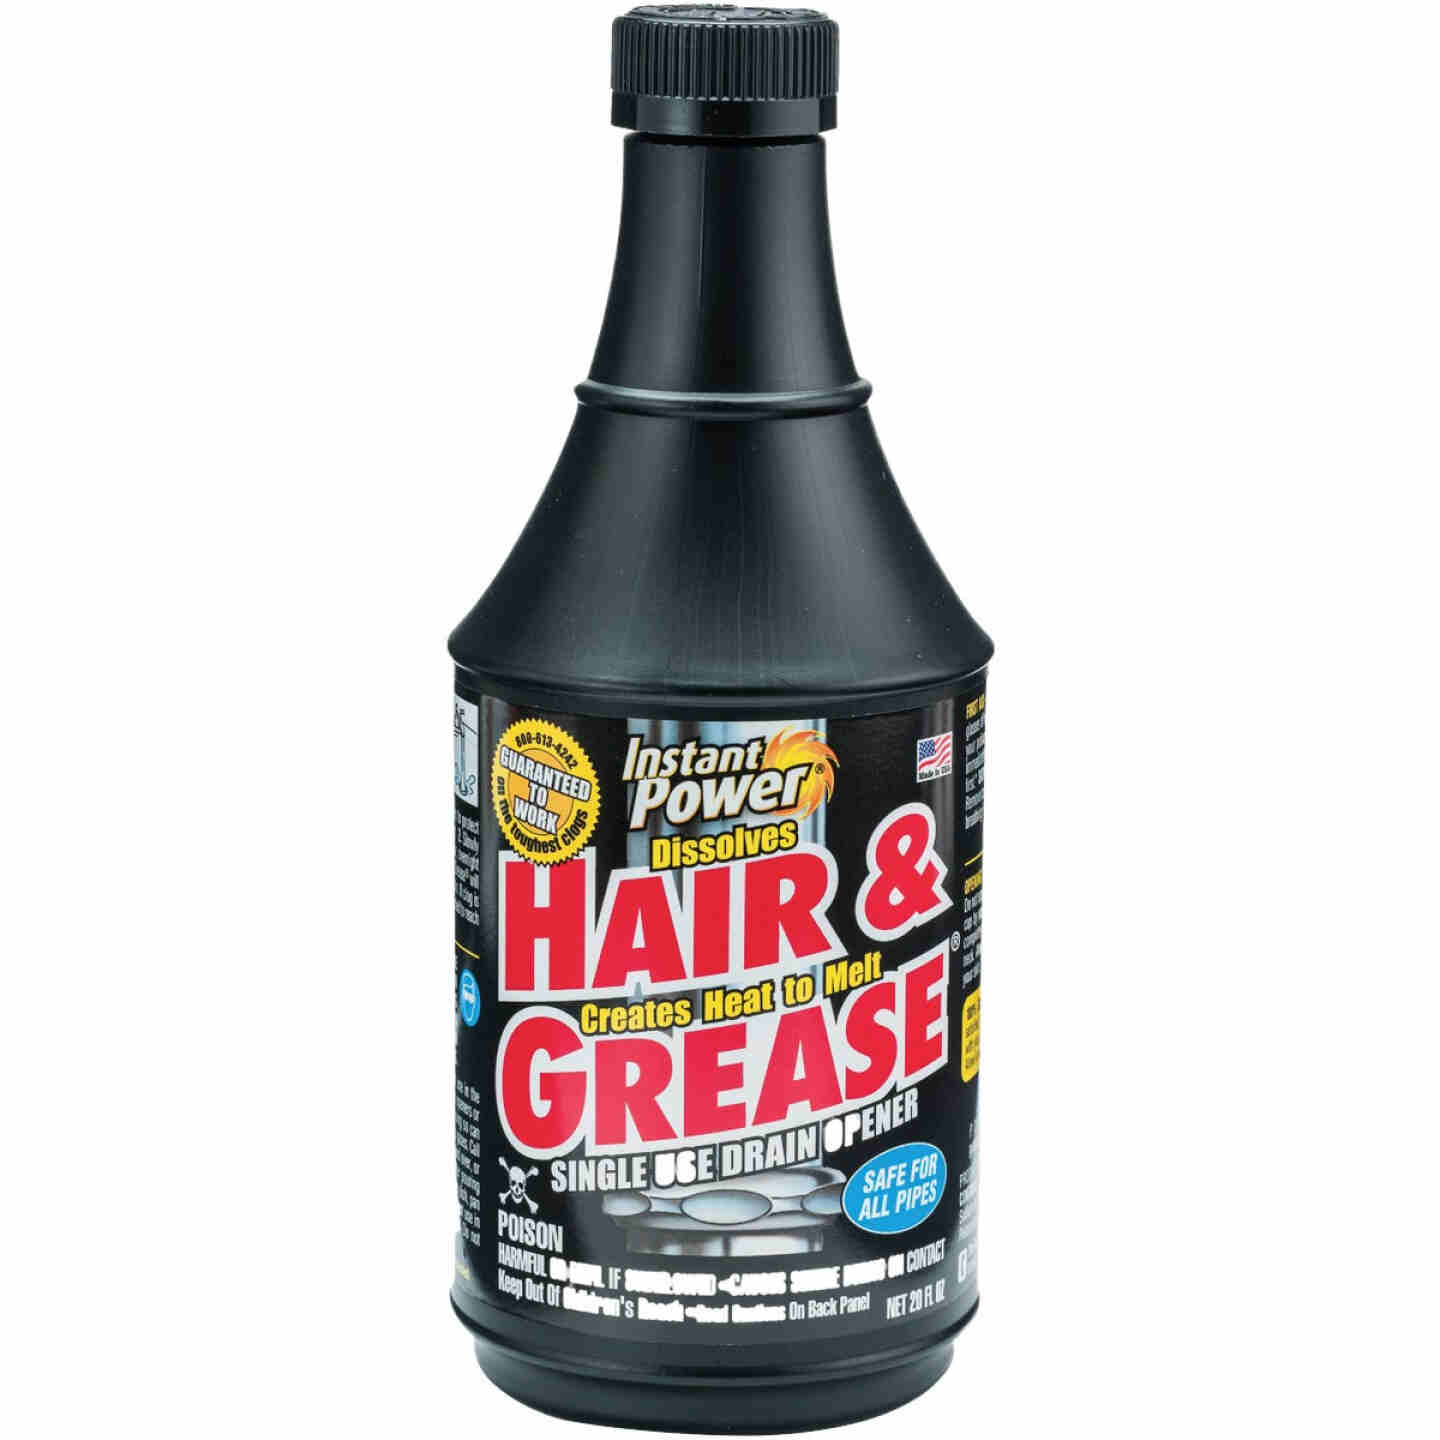 Instant Power Hair & Grease 20 Oz. Liquid Single Use Drain Opener Image 1